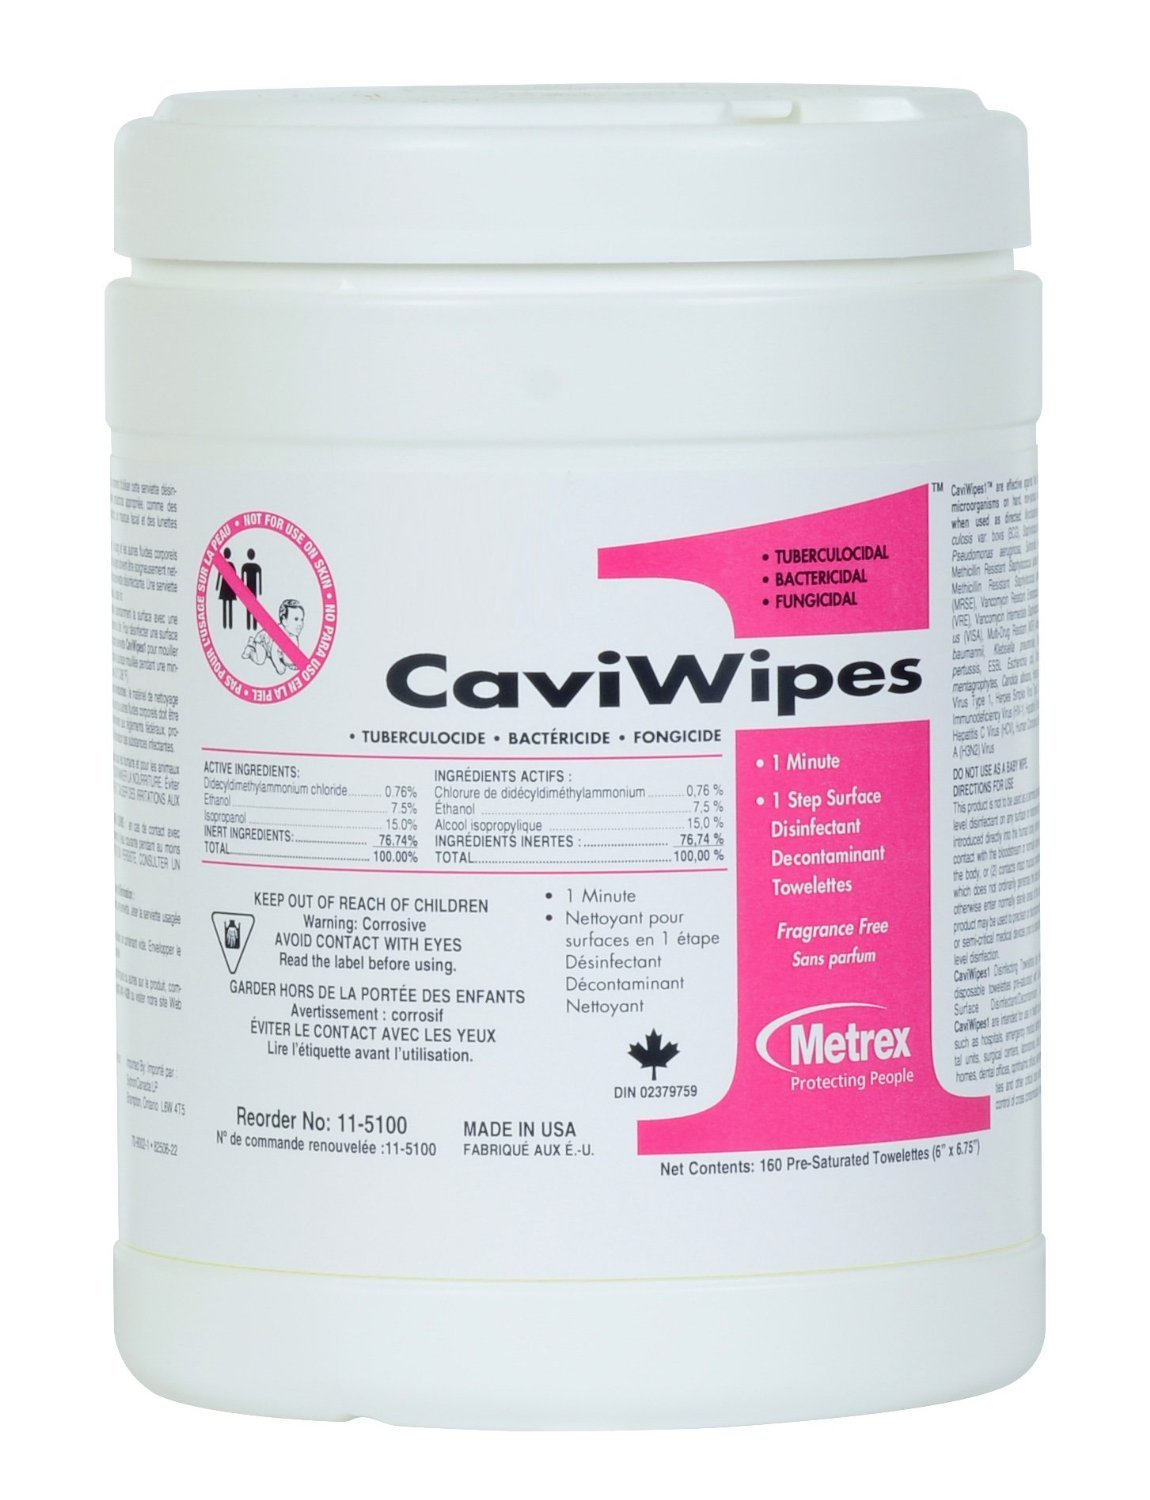 CaviWipes1 Surface Disinfecting Wipes, by Metrex, Large, 160 Count Canister - Case of 12